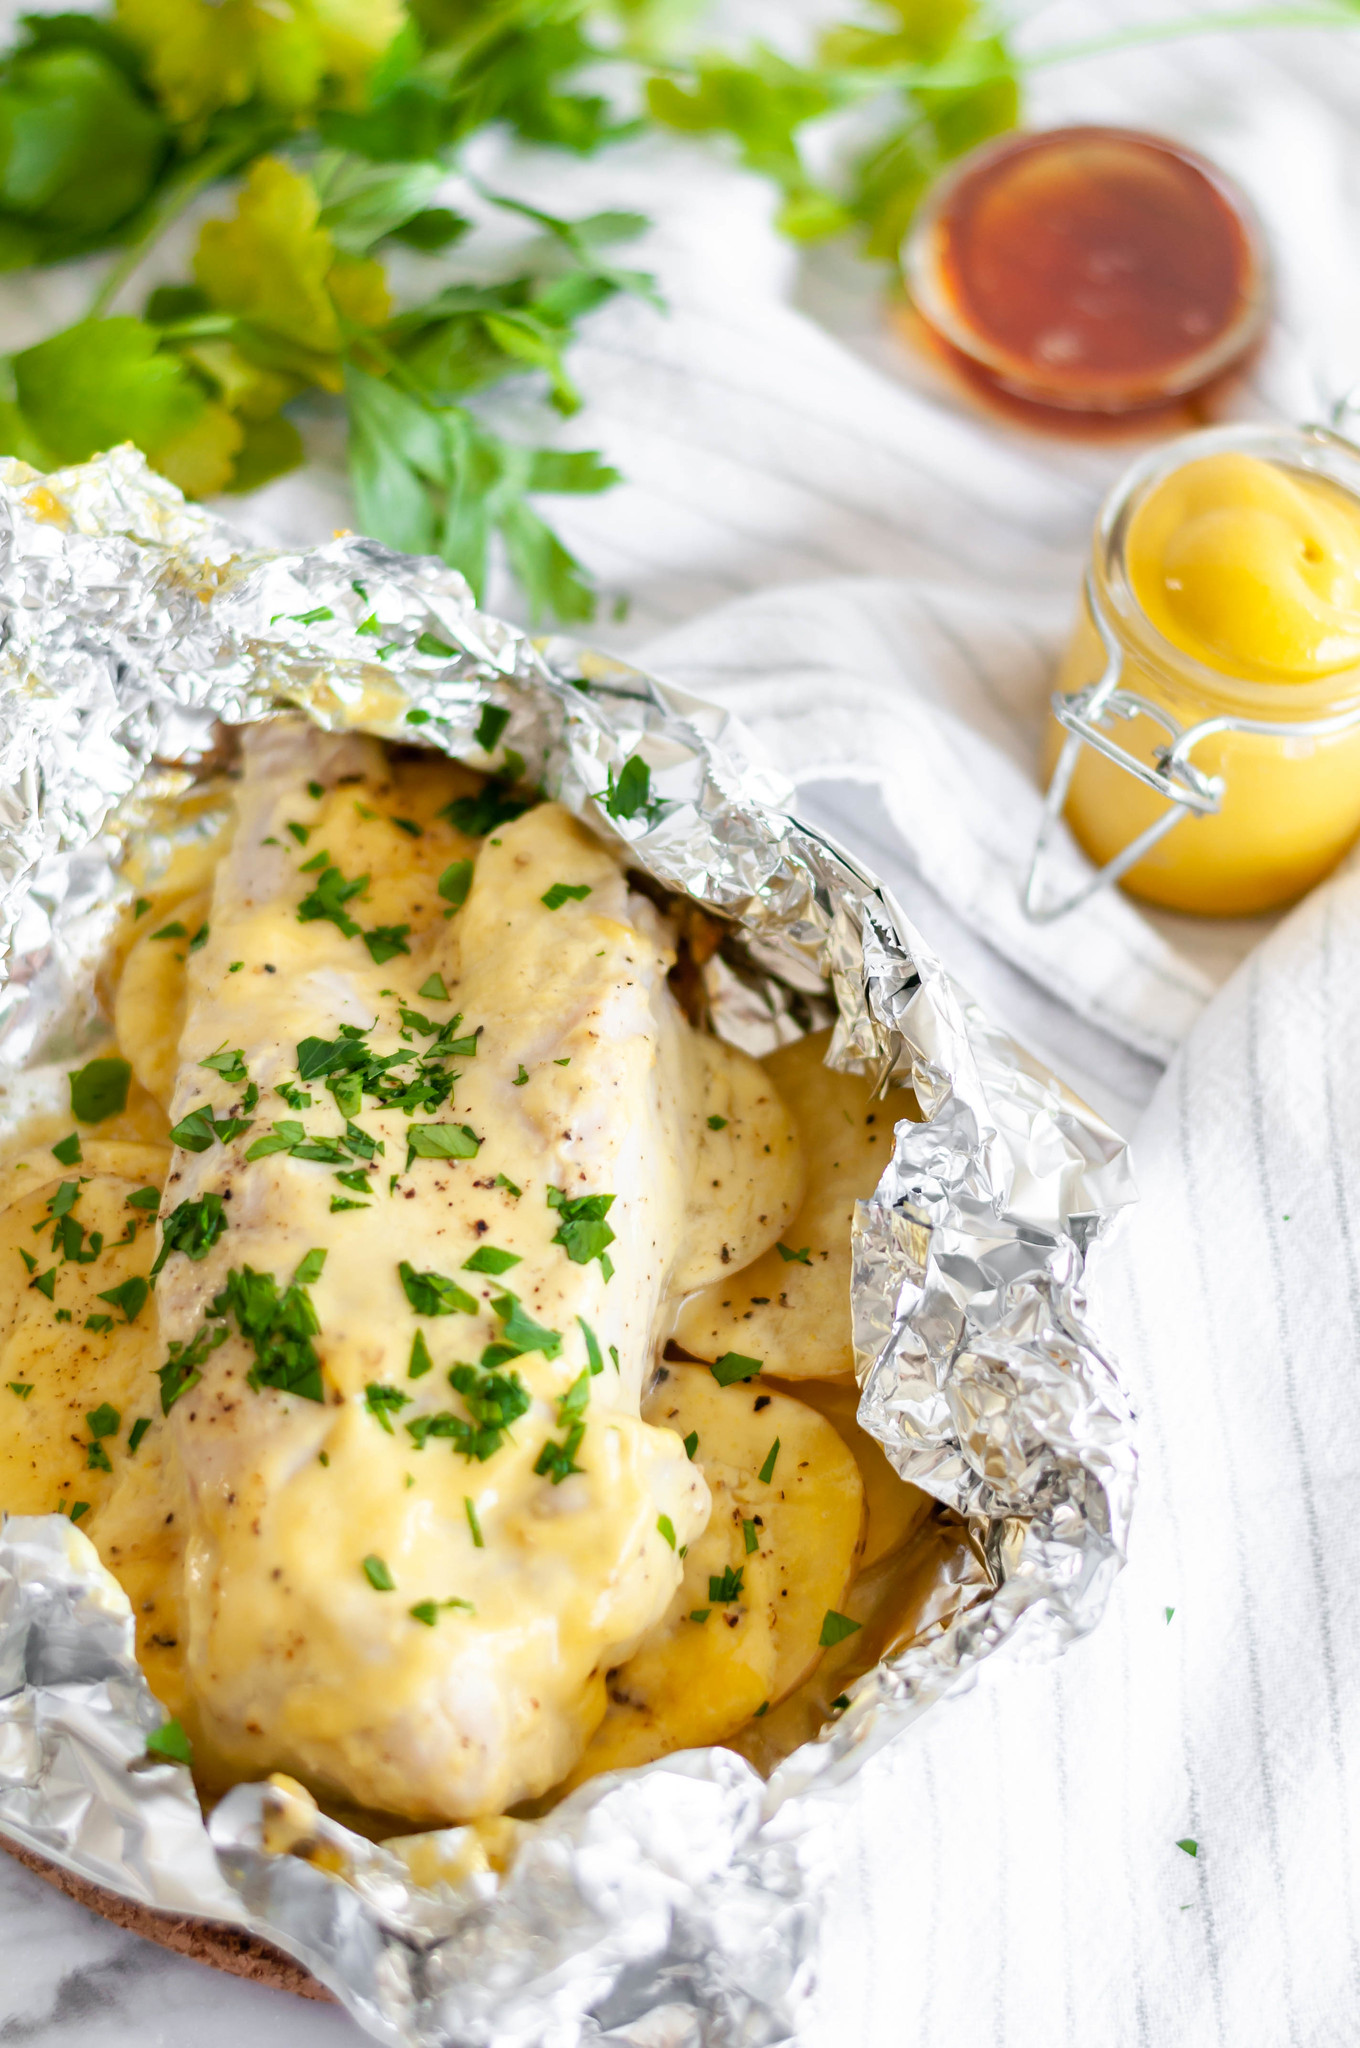 Honey Mustard Chicken and Potato Foil Packs are a simple weeknight dinner the whole family will love. Chicken breasts, thinly sliced potatoes and a simple homemade honey mustard sauce.